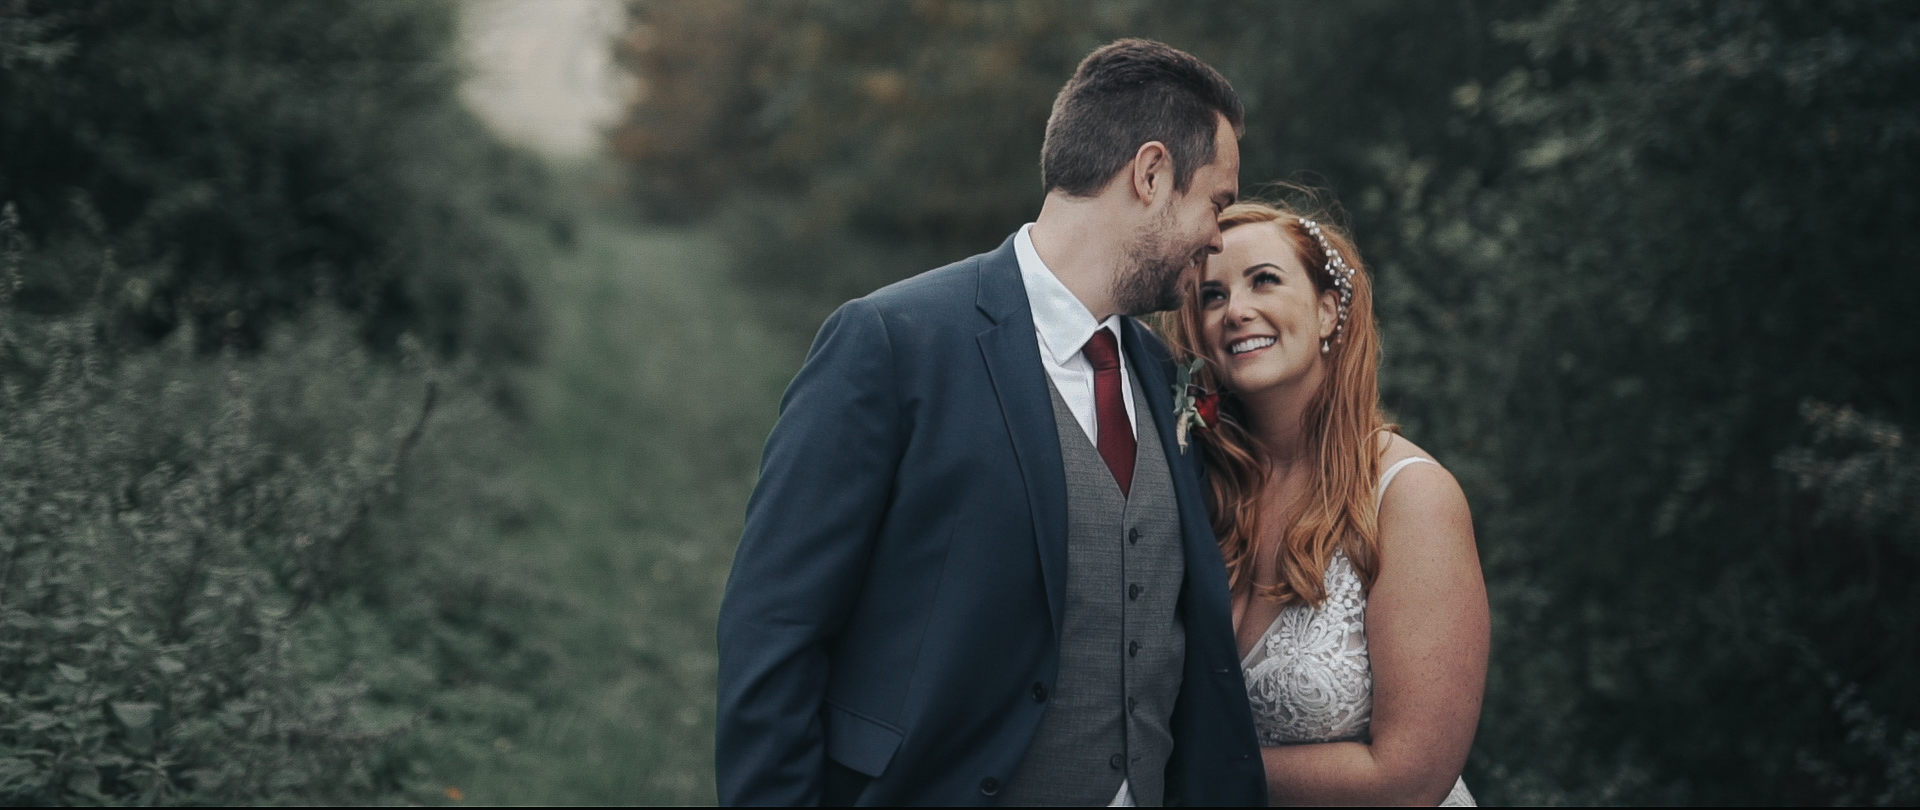 The Barns at Lodge Farm Wedding Video - Philip Smith Visuals